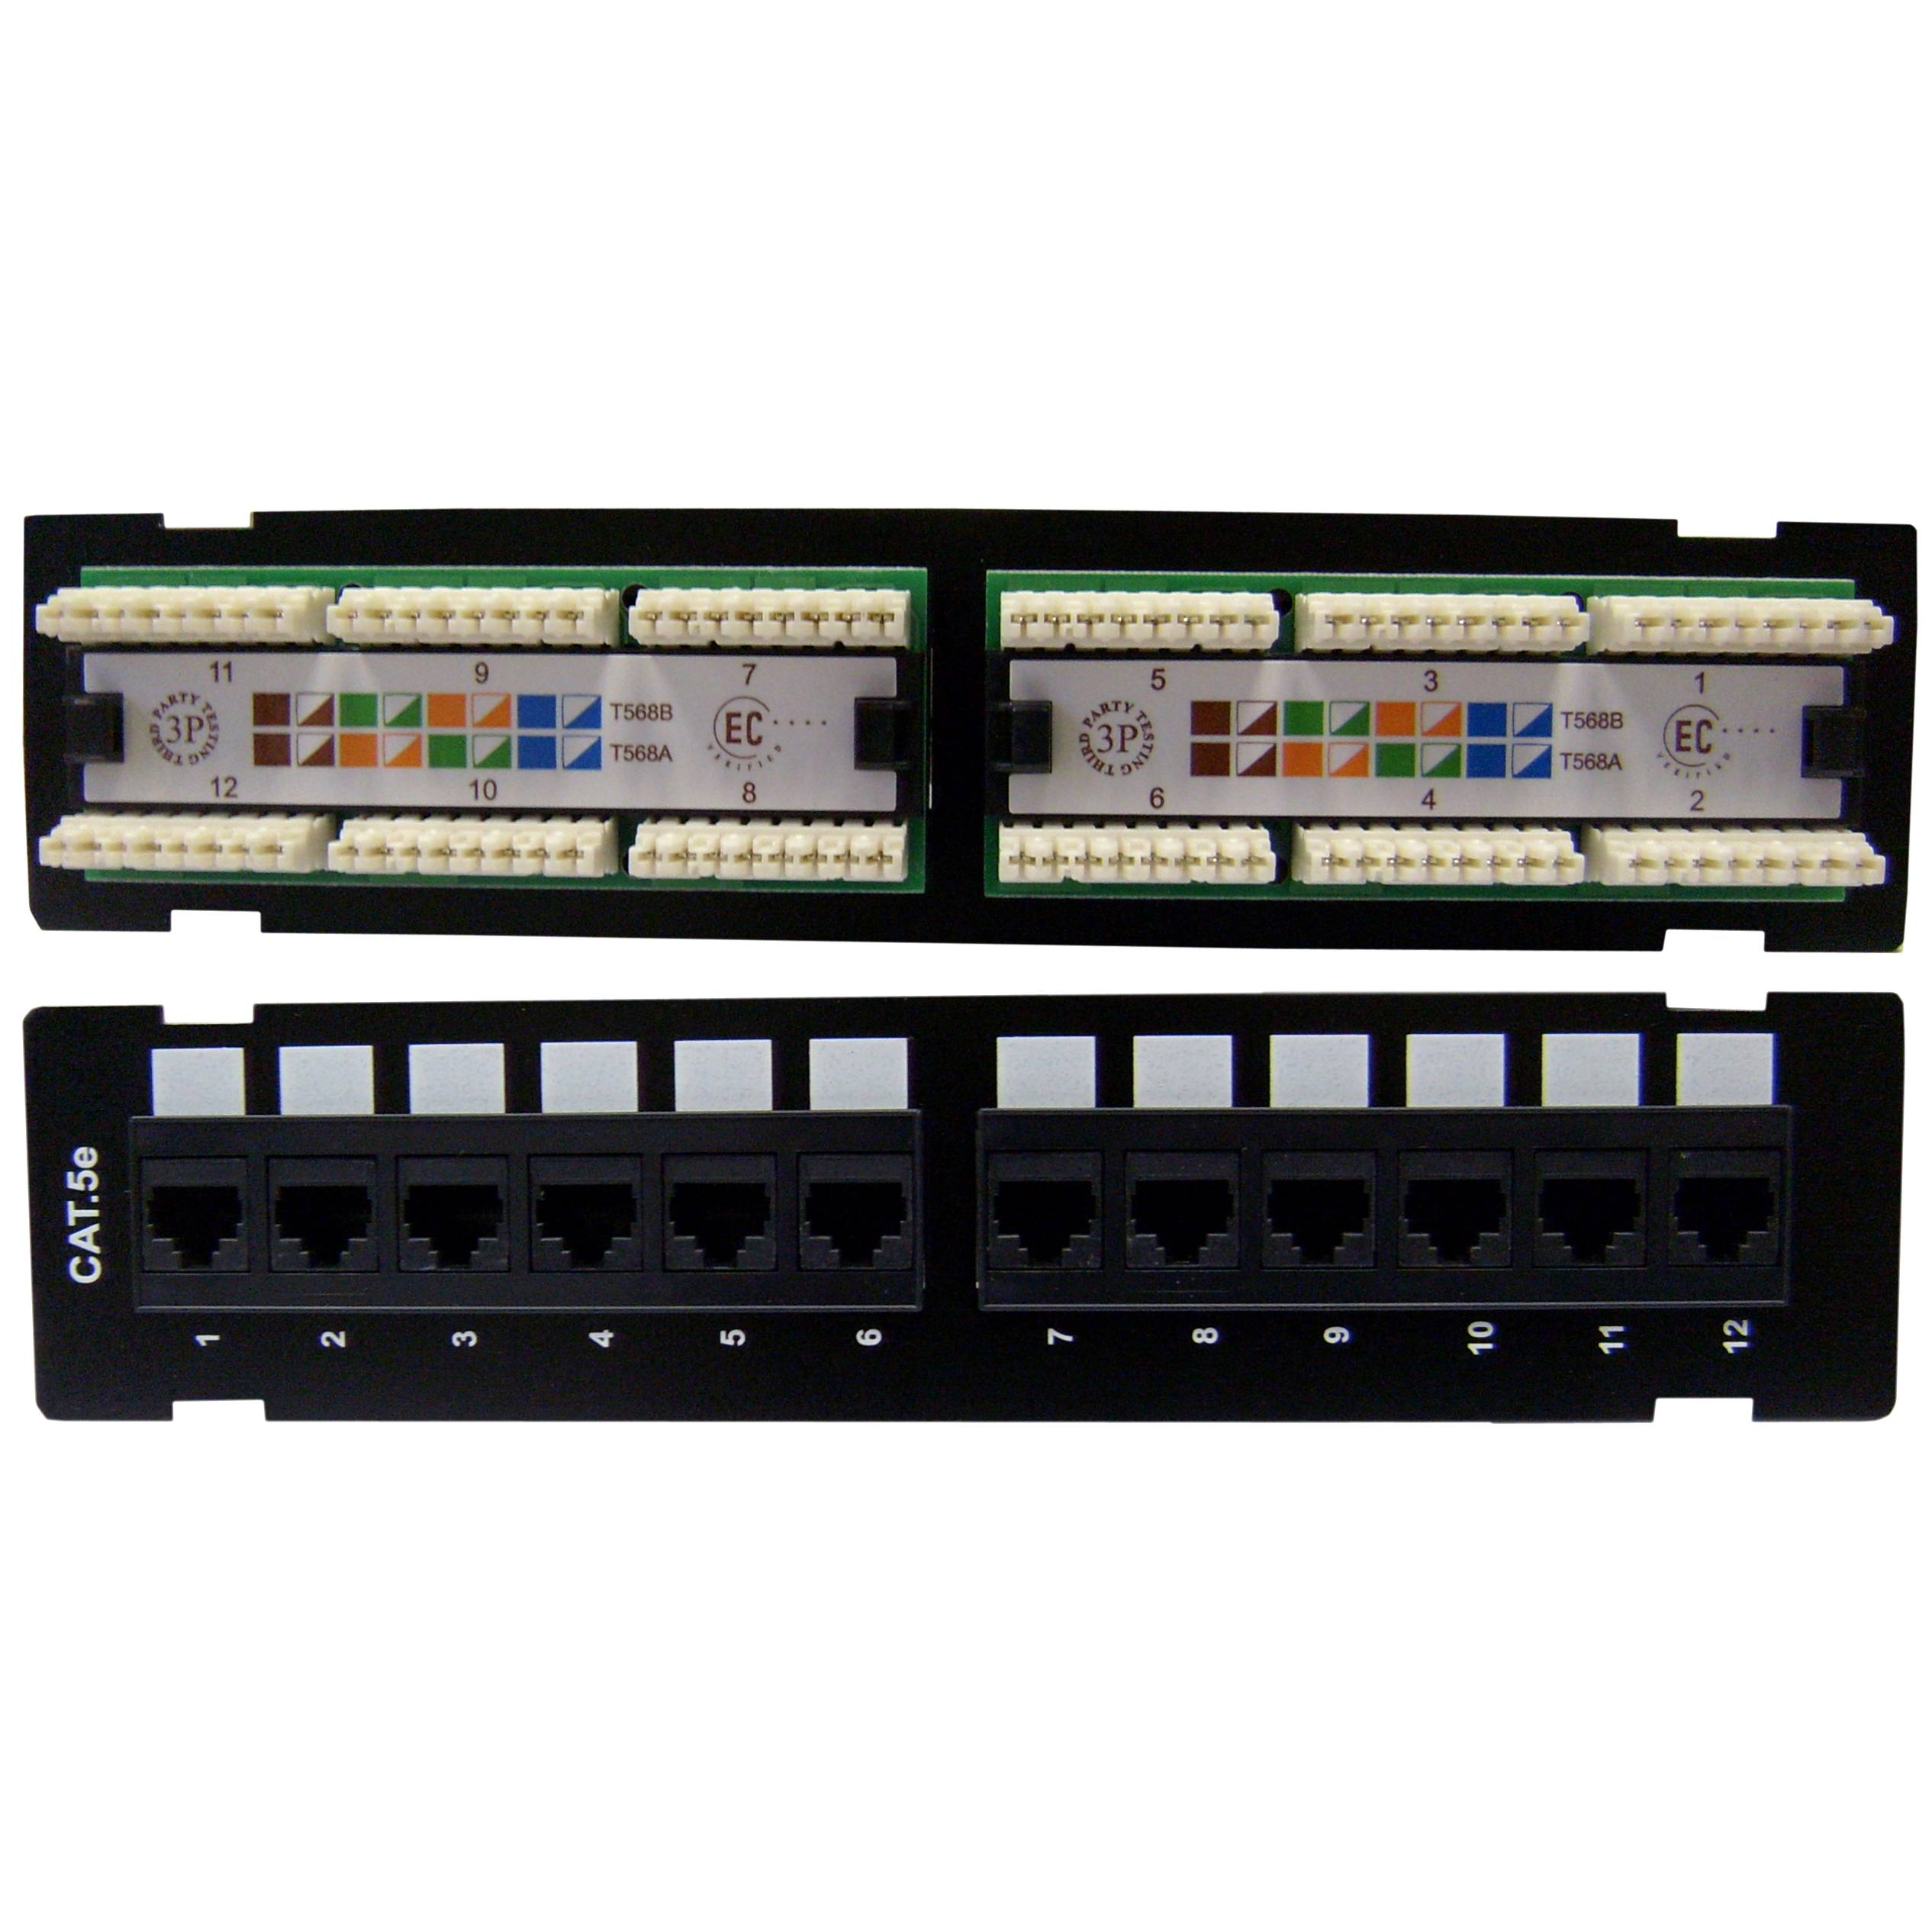 network wiring diagram patch panel wall mount  12 port cat5e patch panel  110 type  10 inch  wall mount  12 port cat5e patch panel